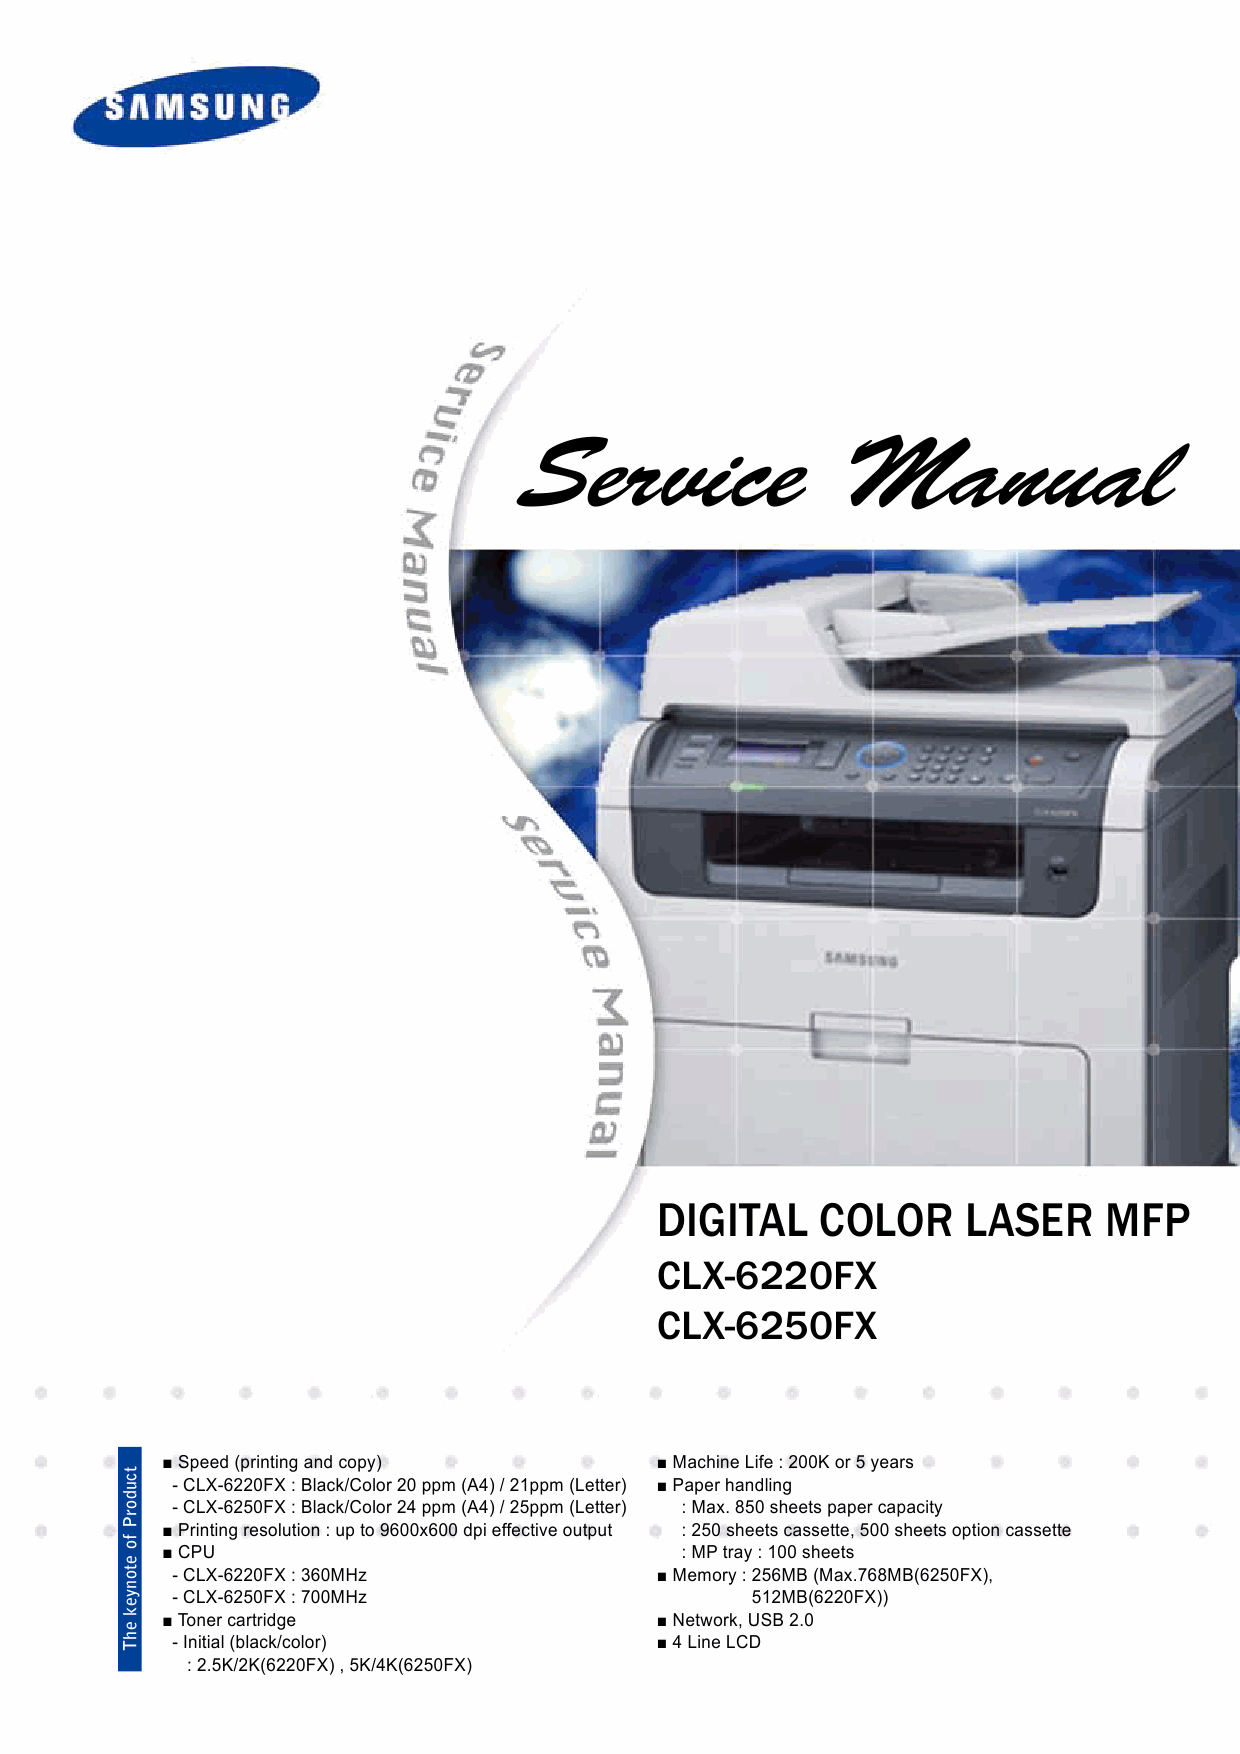 samsung digital color laser mfp clx 6220fx 6250fx parts and service manual. Black Bedroom Furniture Sets. Home Design Ideas